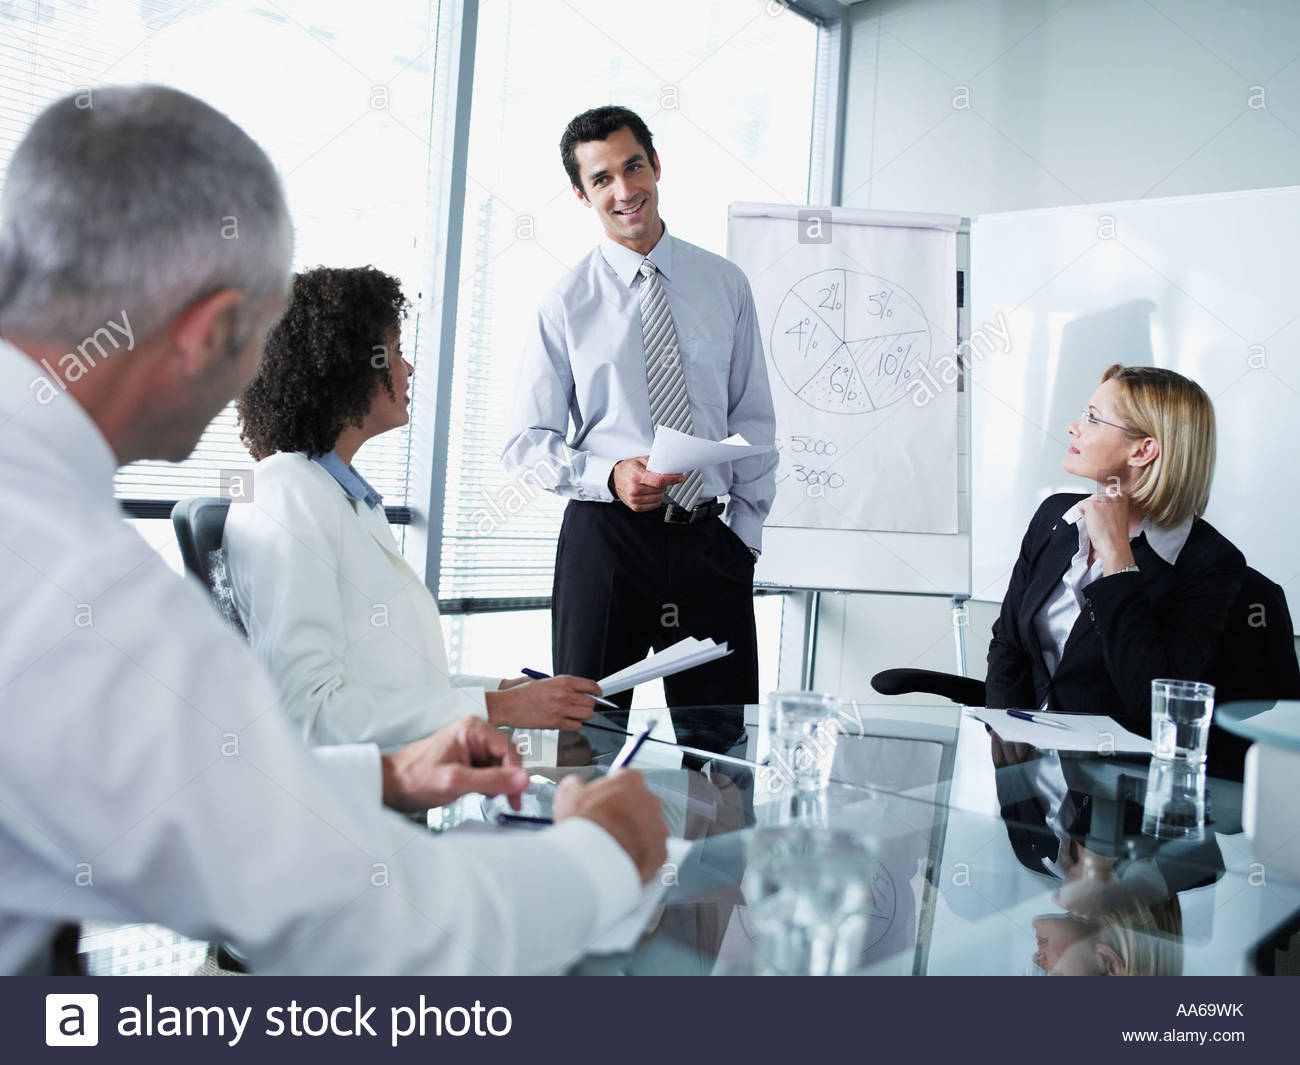 Group of office workers in a boardroom presentation - Stock Image